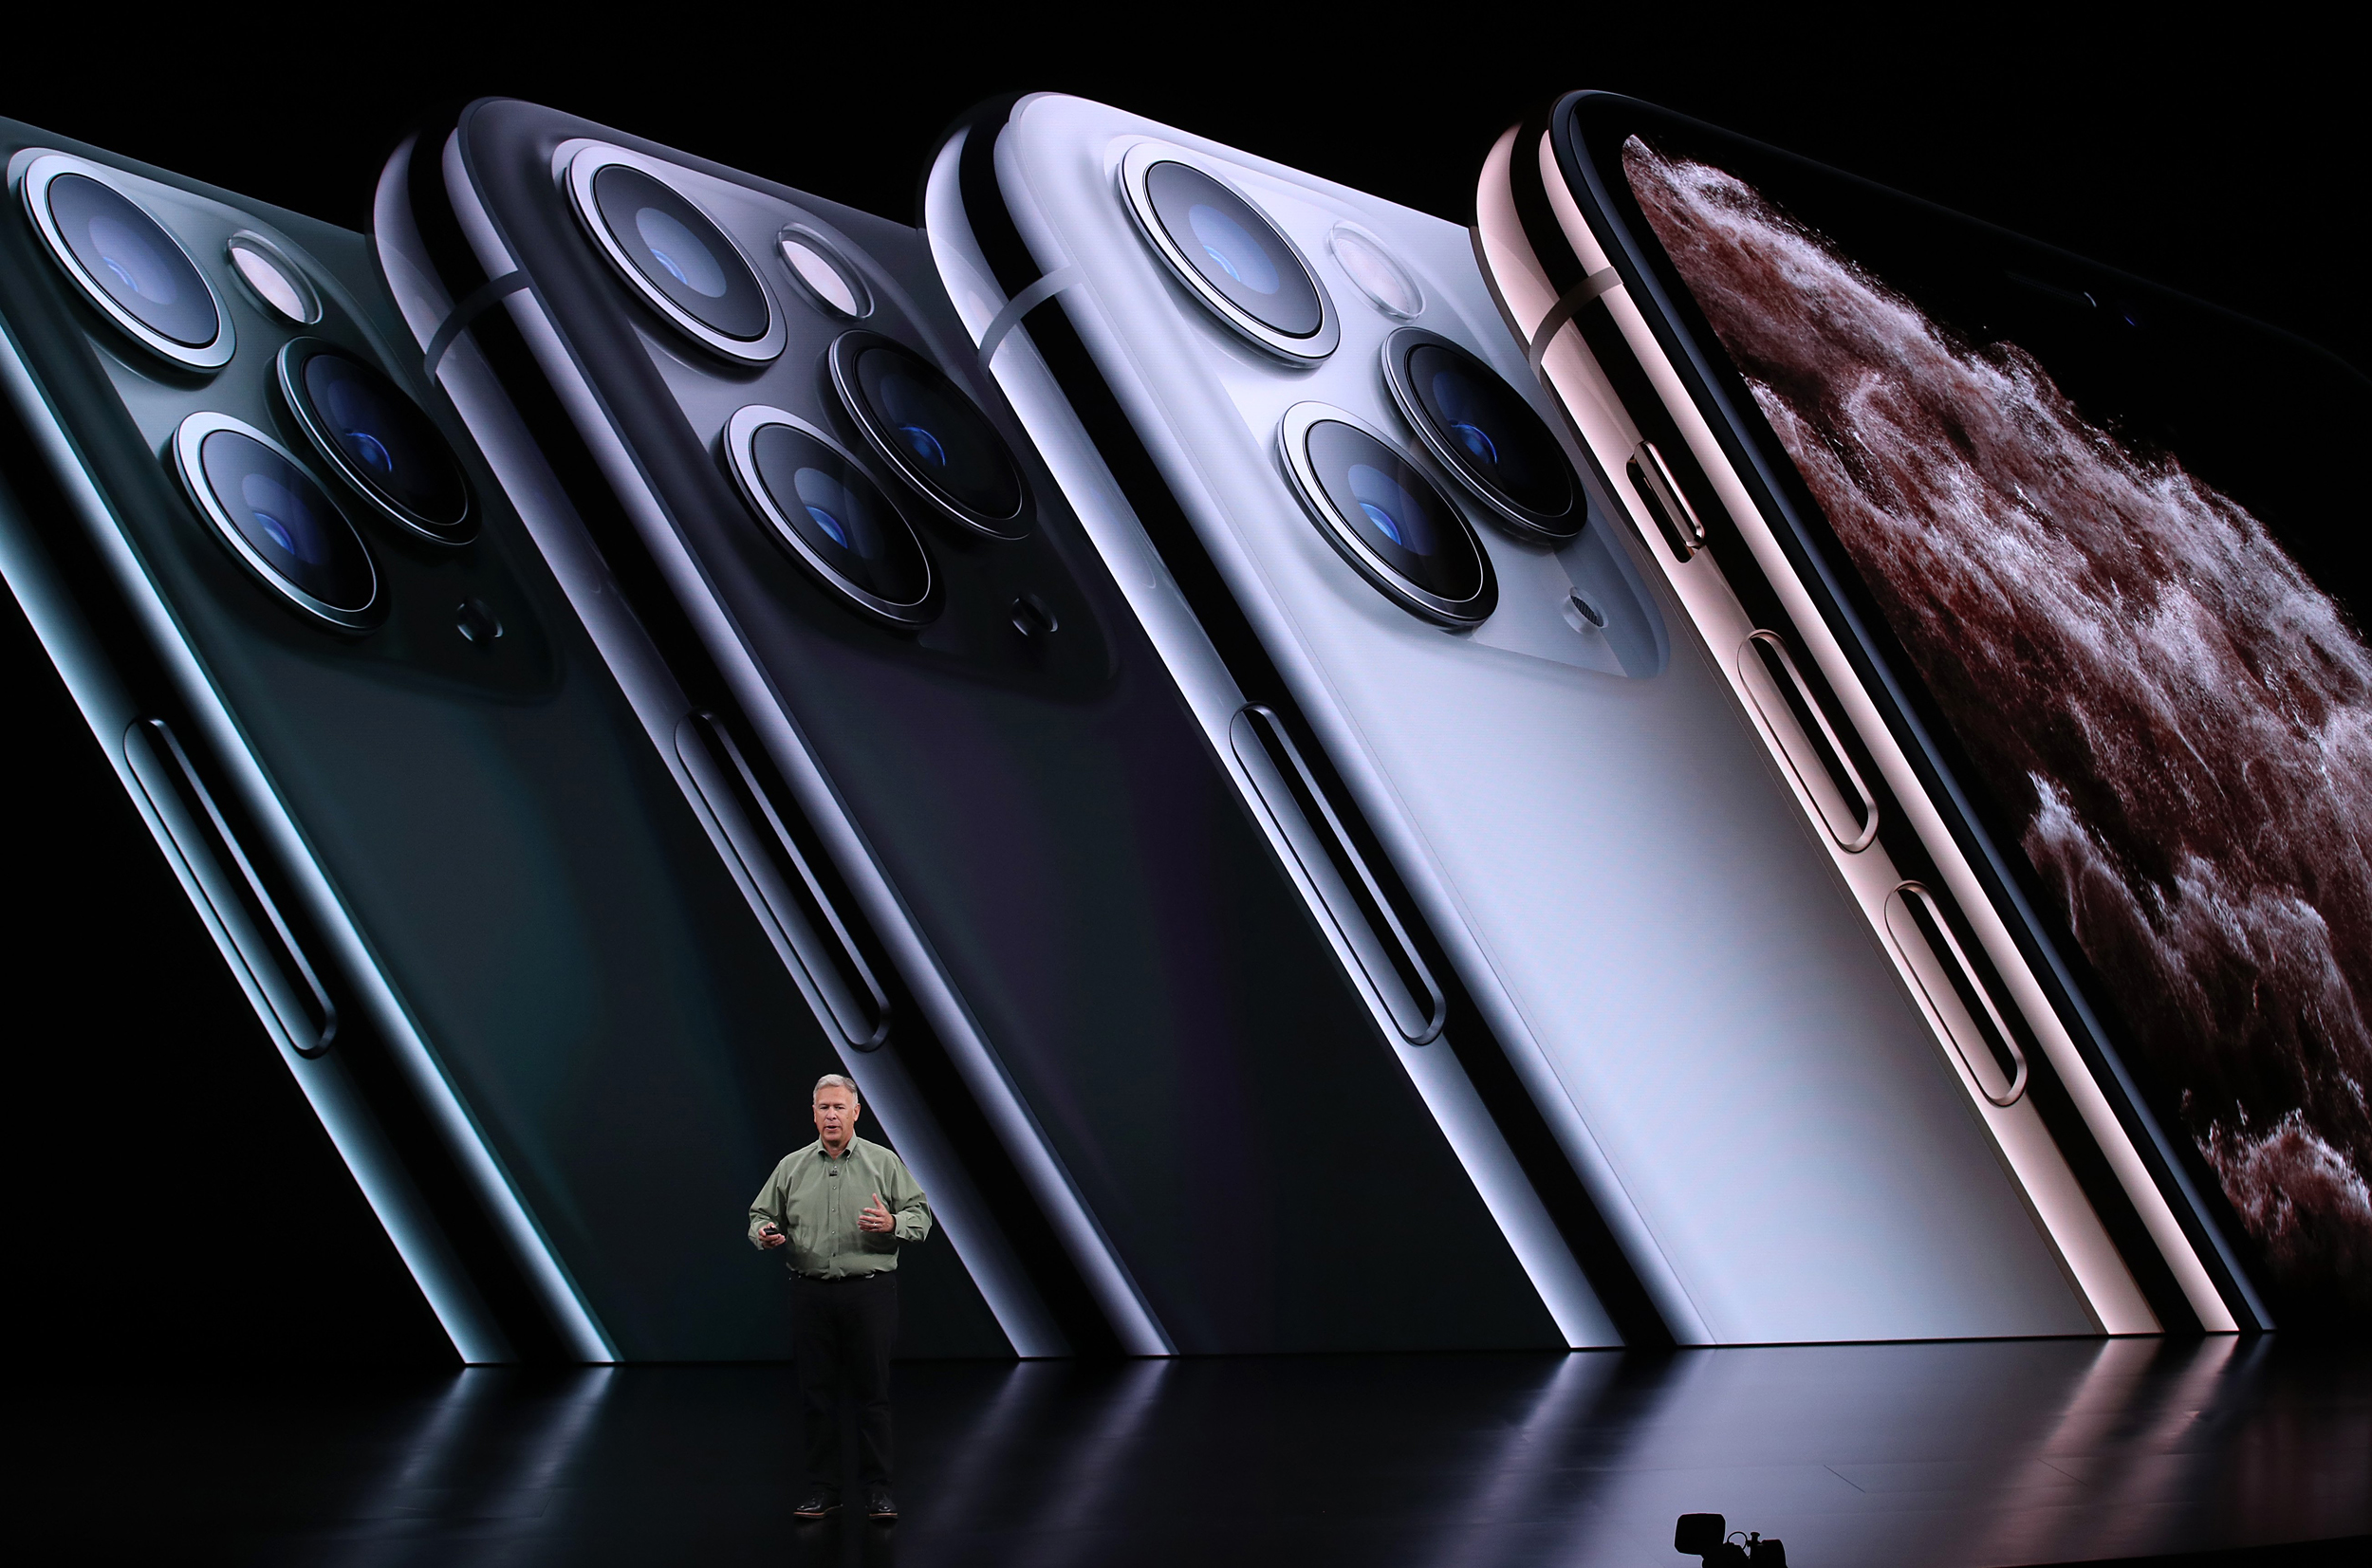 APPLE 's new gadgets : Apple iPhone 11, 11 Pro, Apple Watch Series 5, New iPad , people's reaction and respone